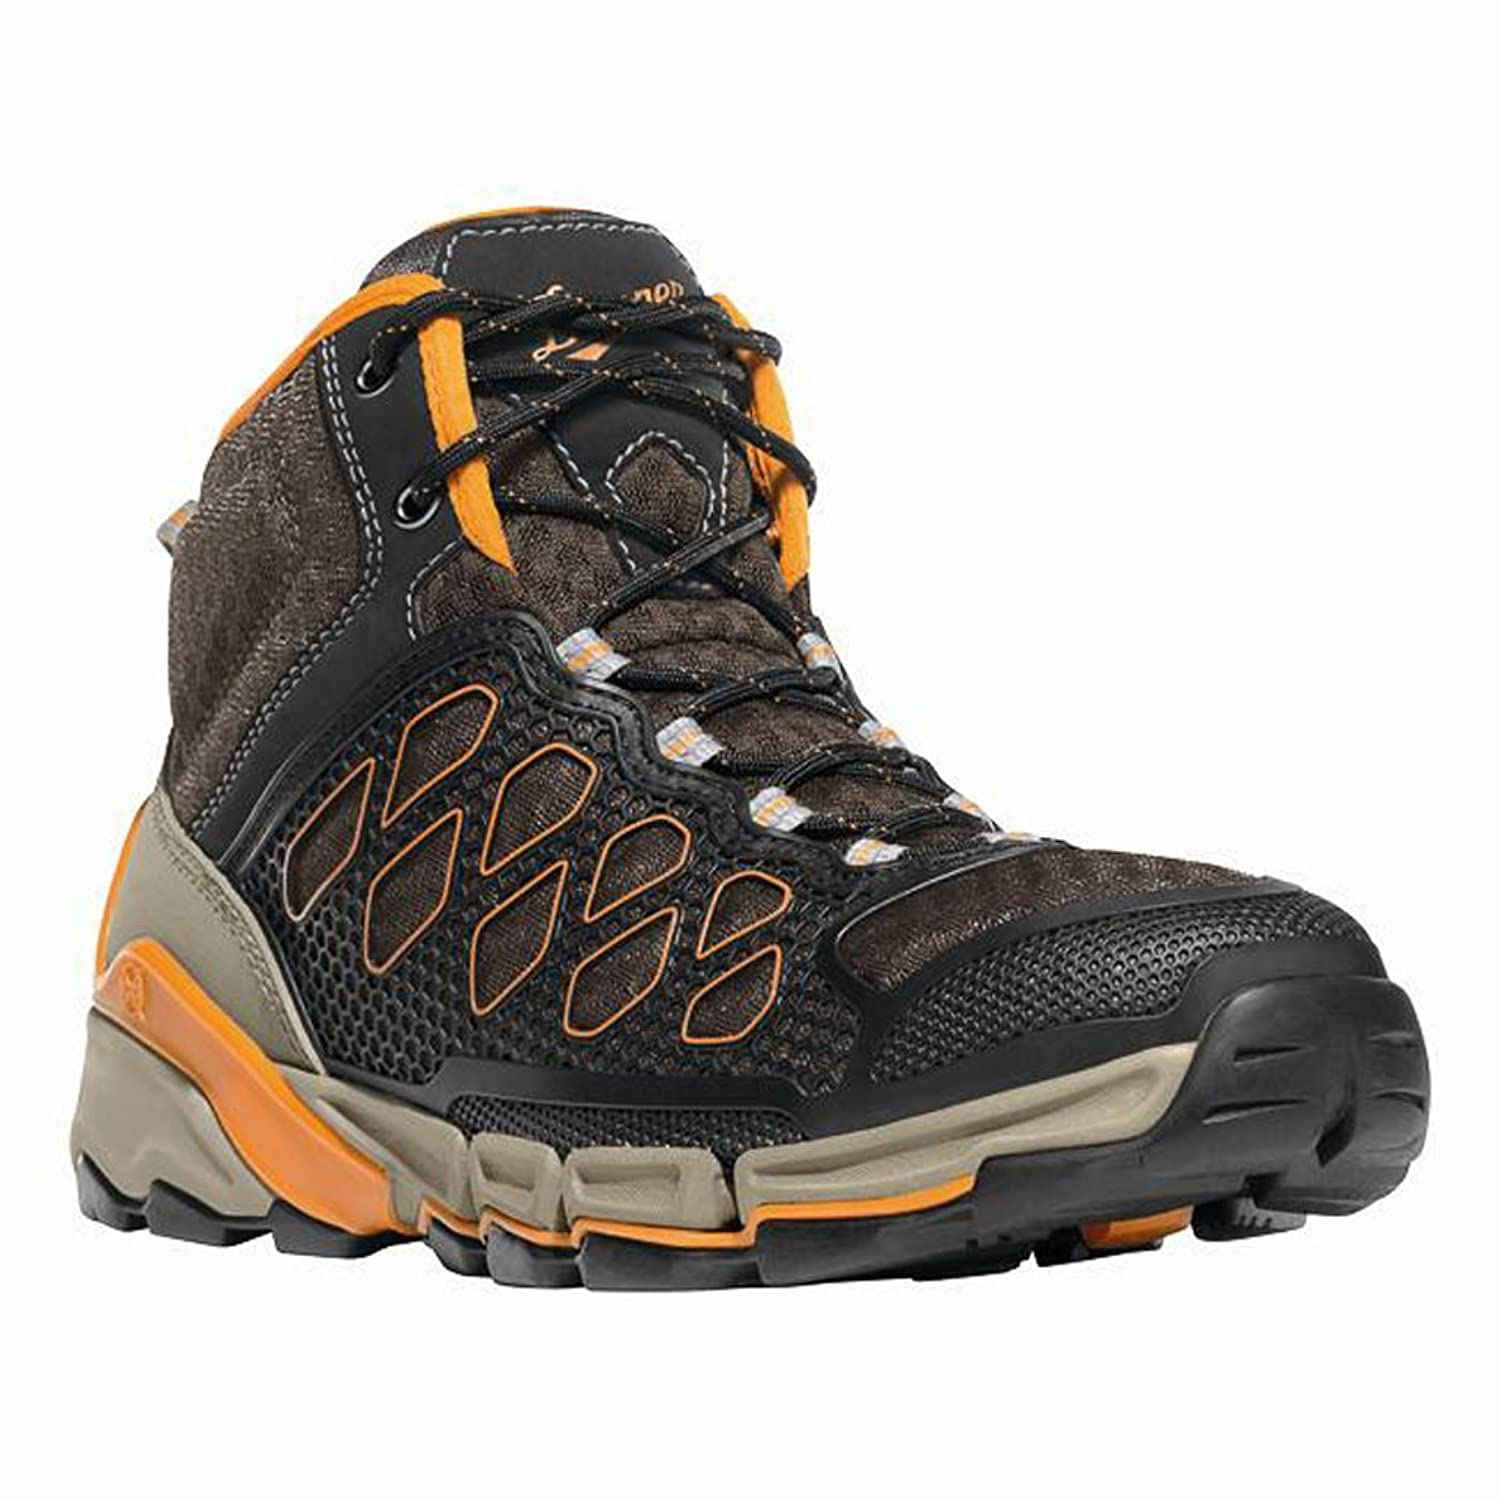 52112 Danner Men's Extrovert 4.5 Hiking Boots - Brown